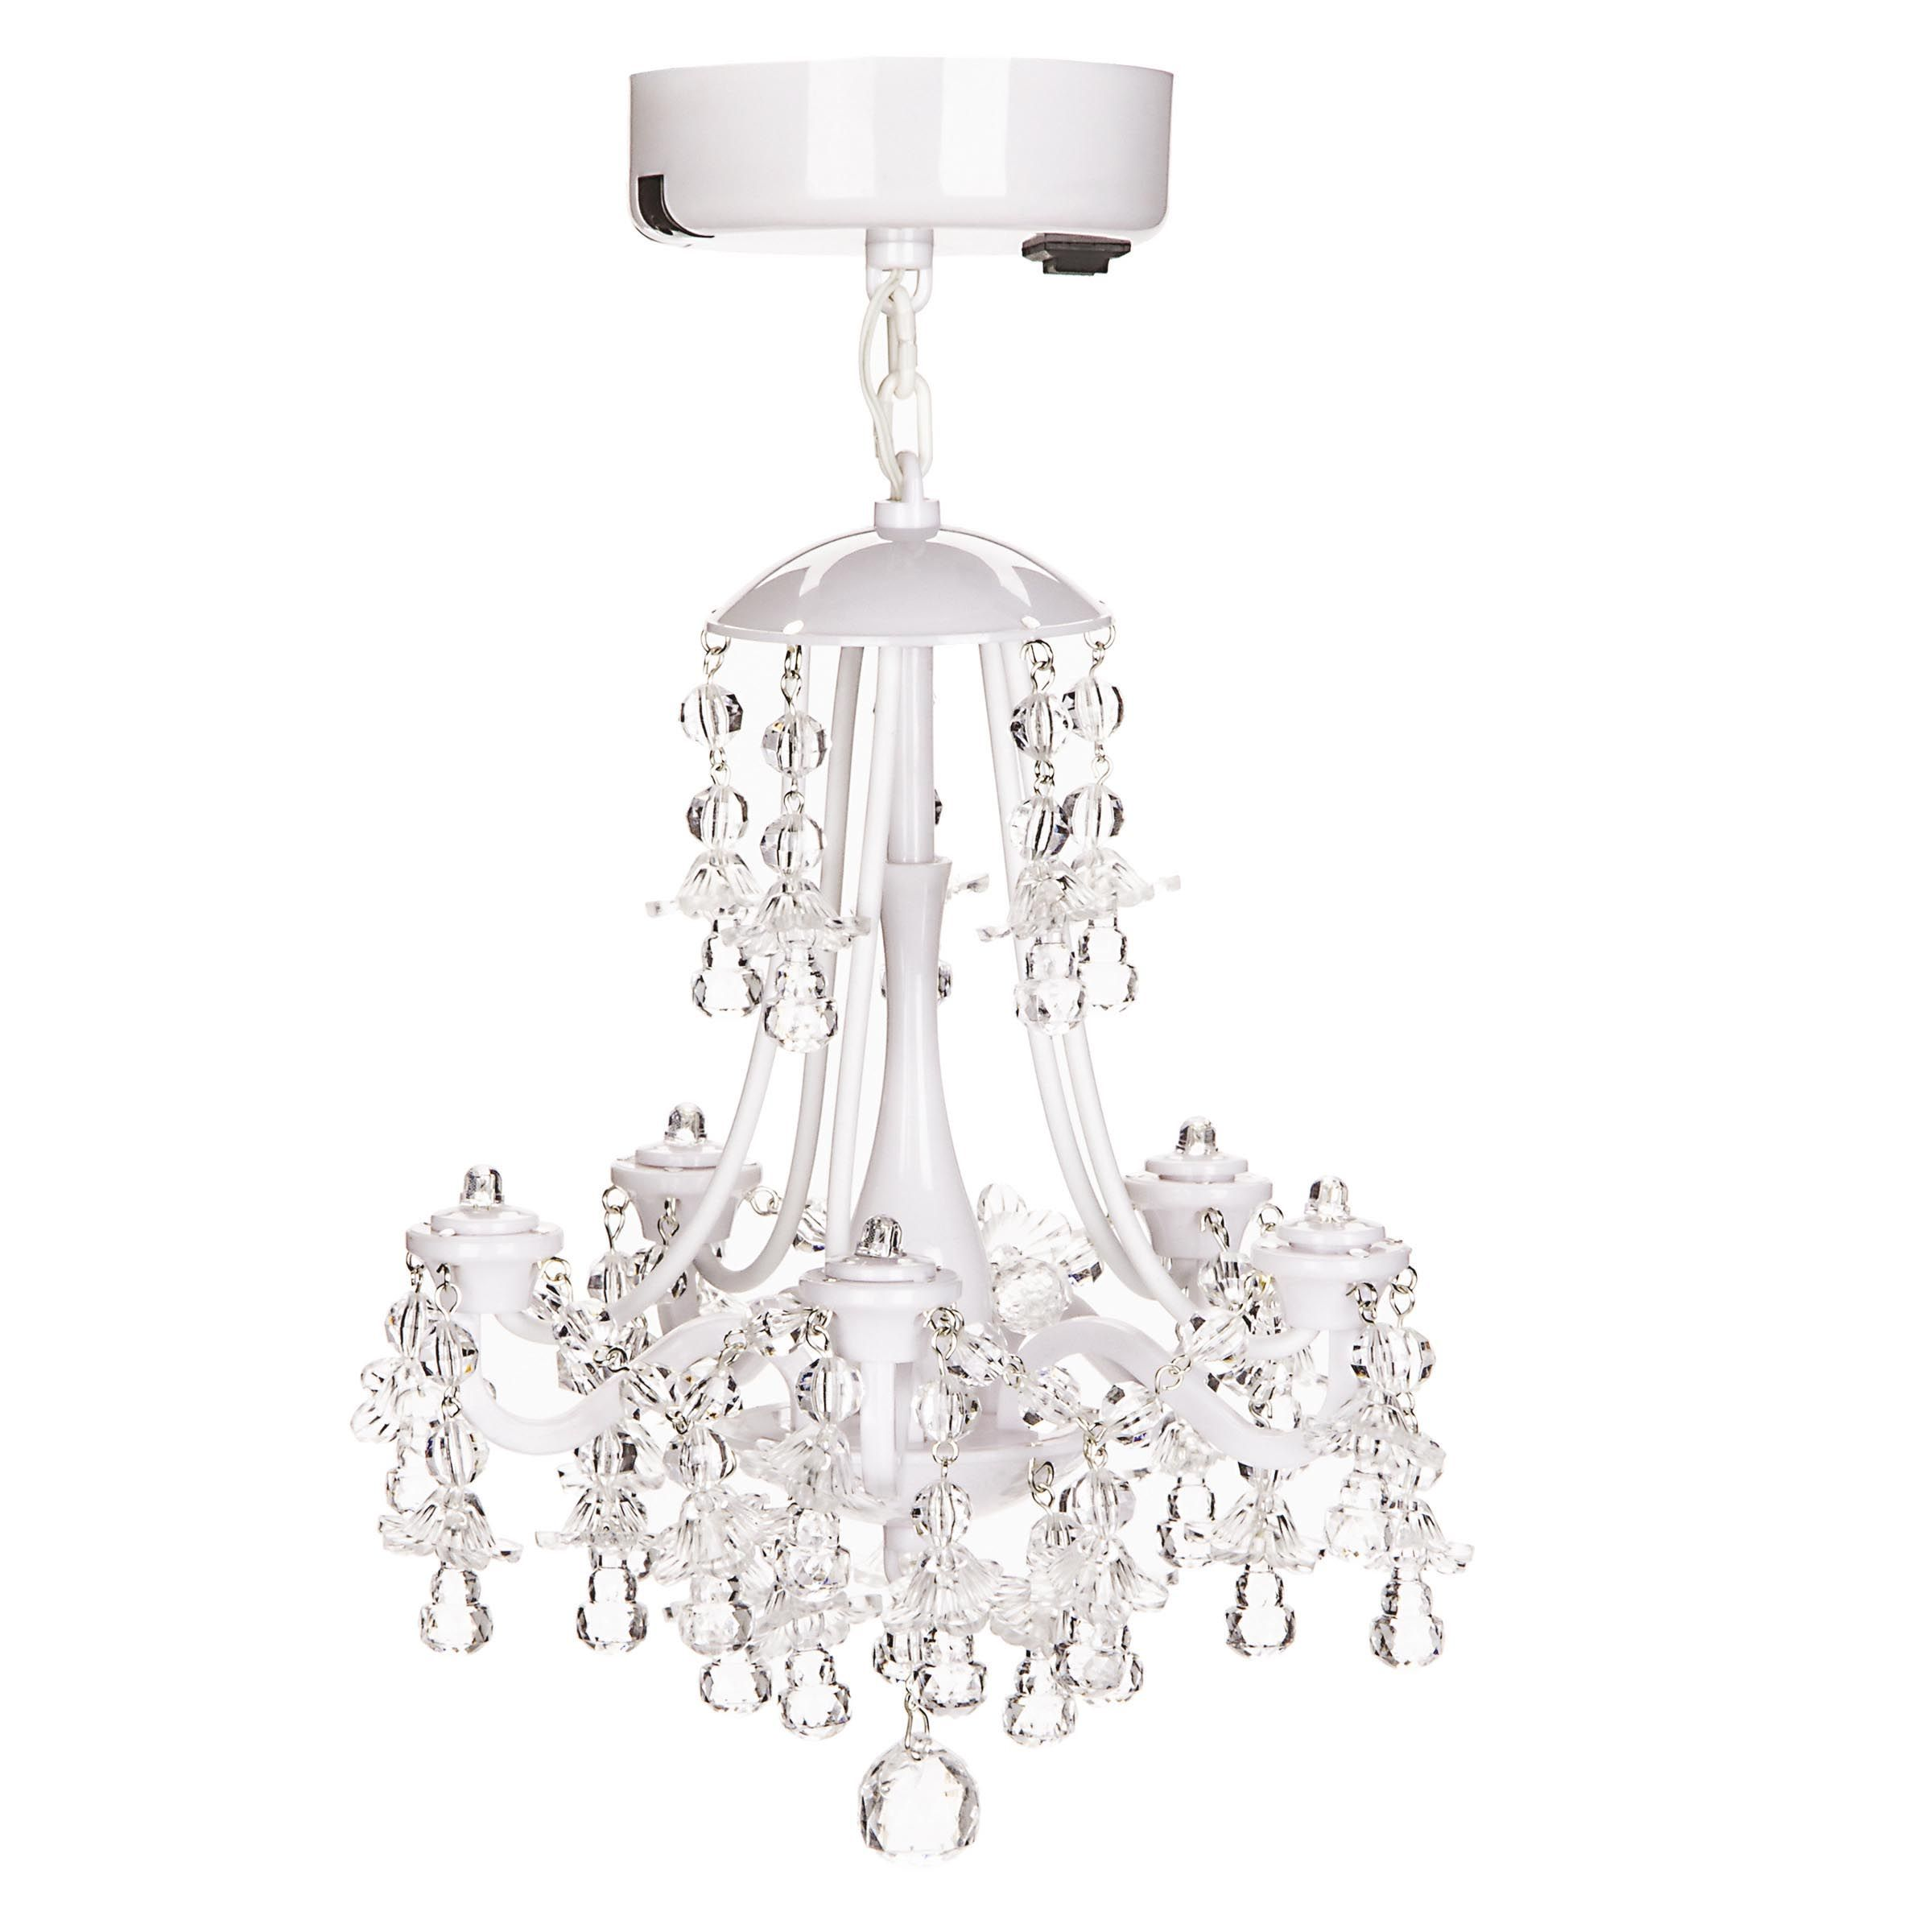 White Locker Chandelier, , Hi-res Perfect For Doll House